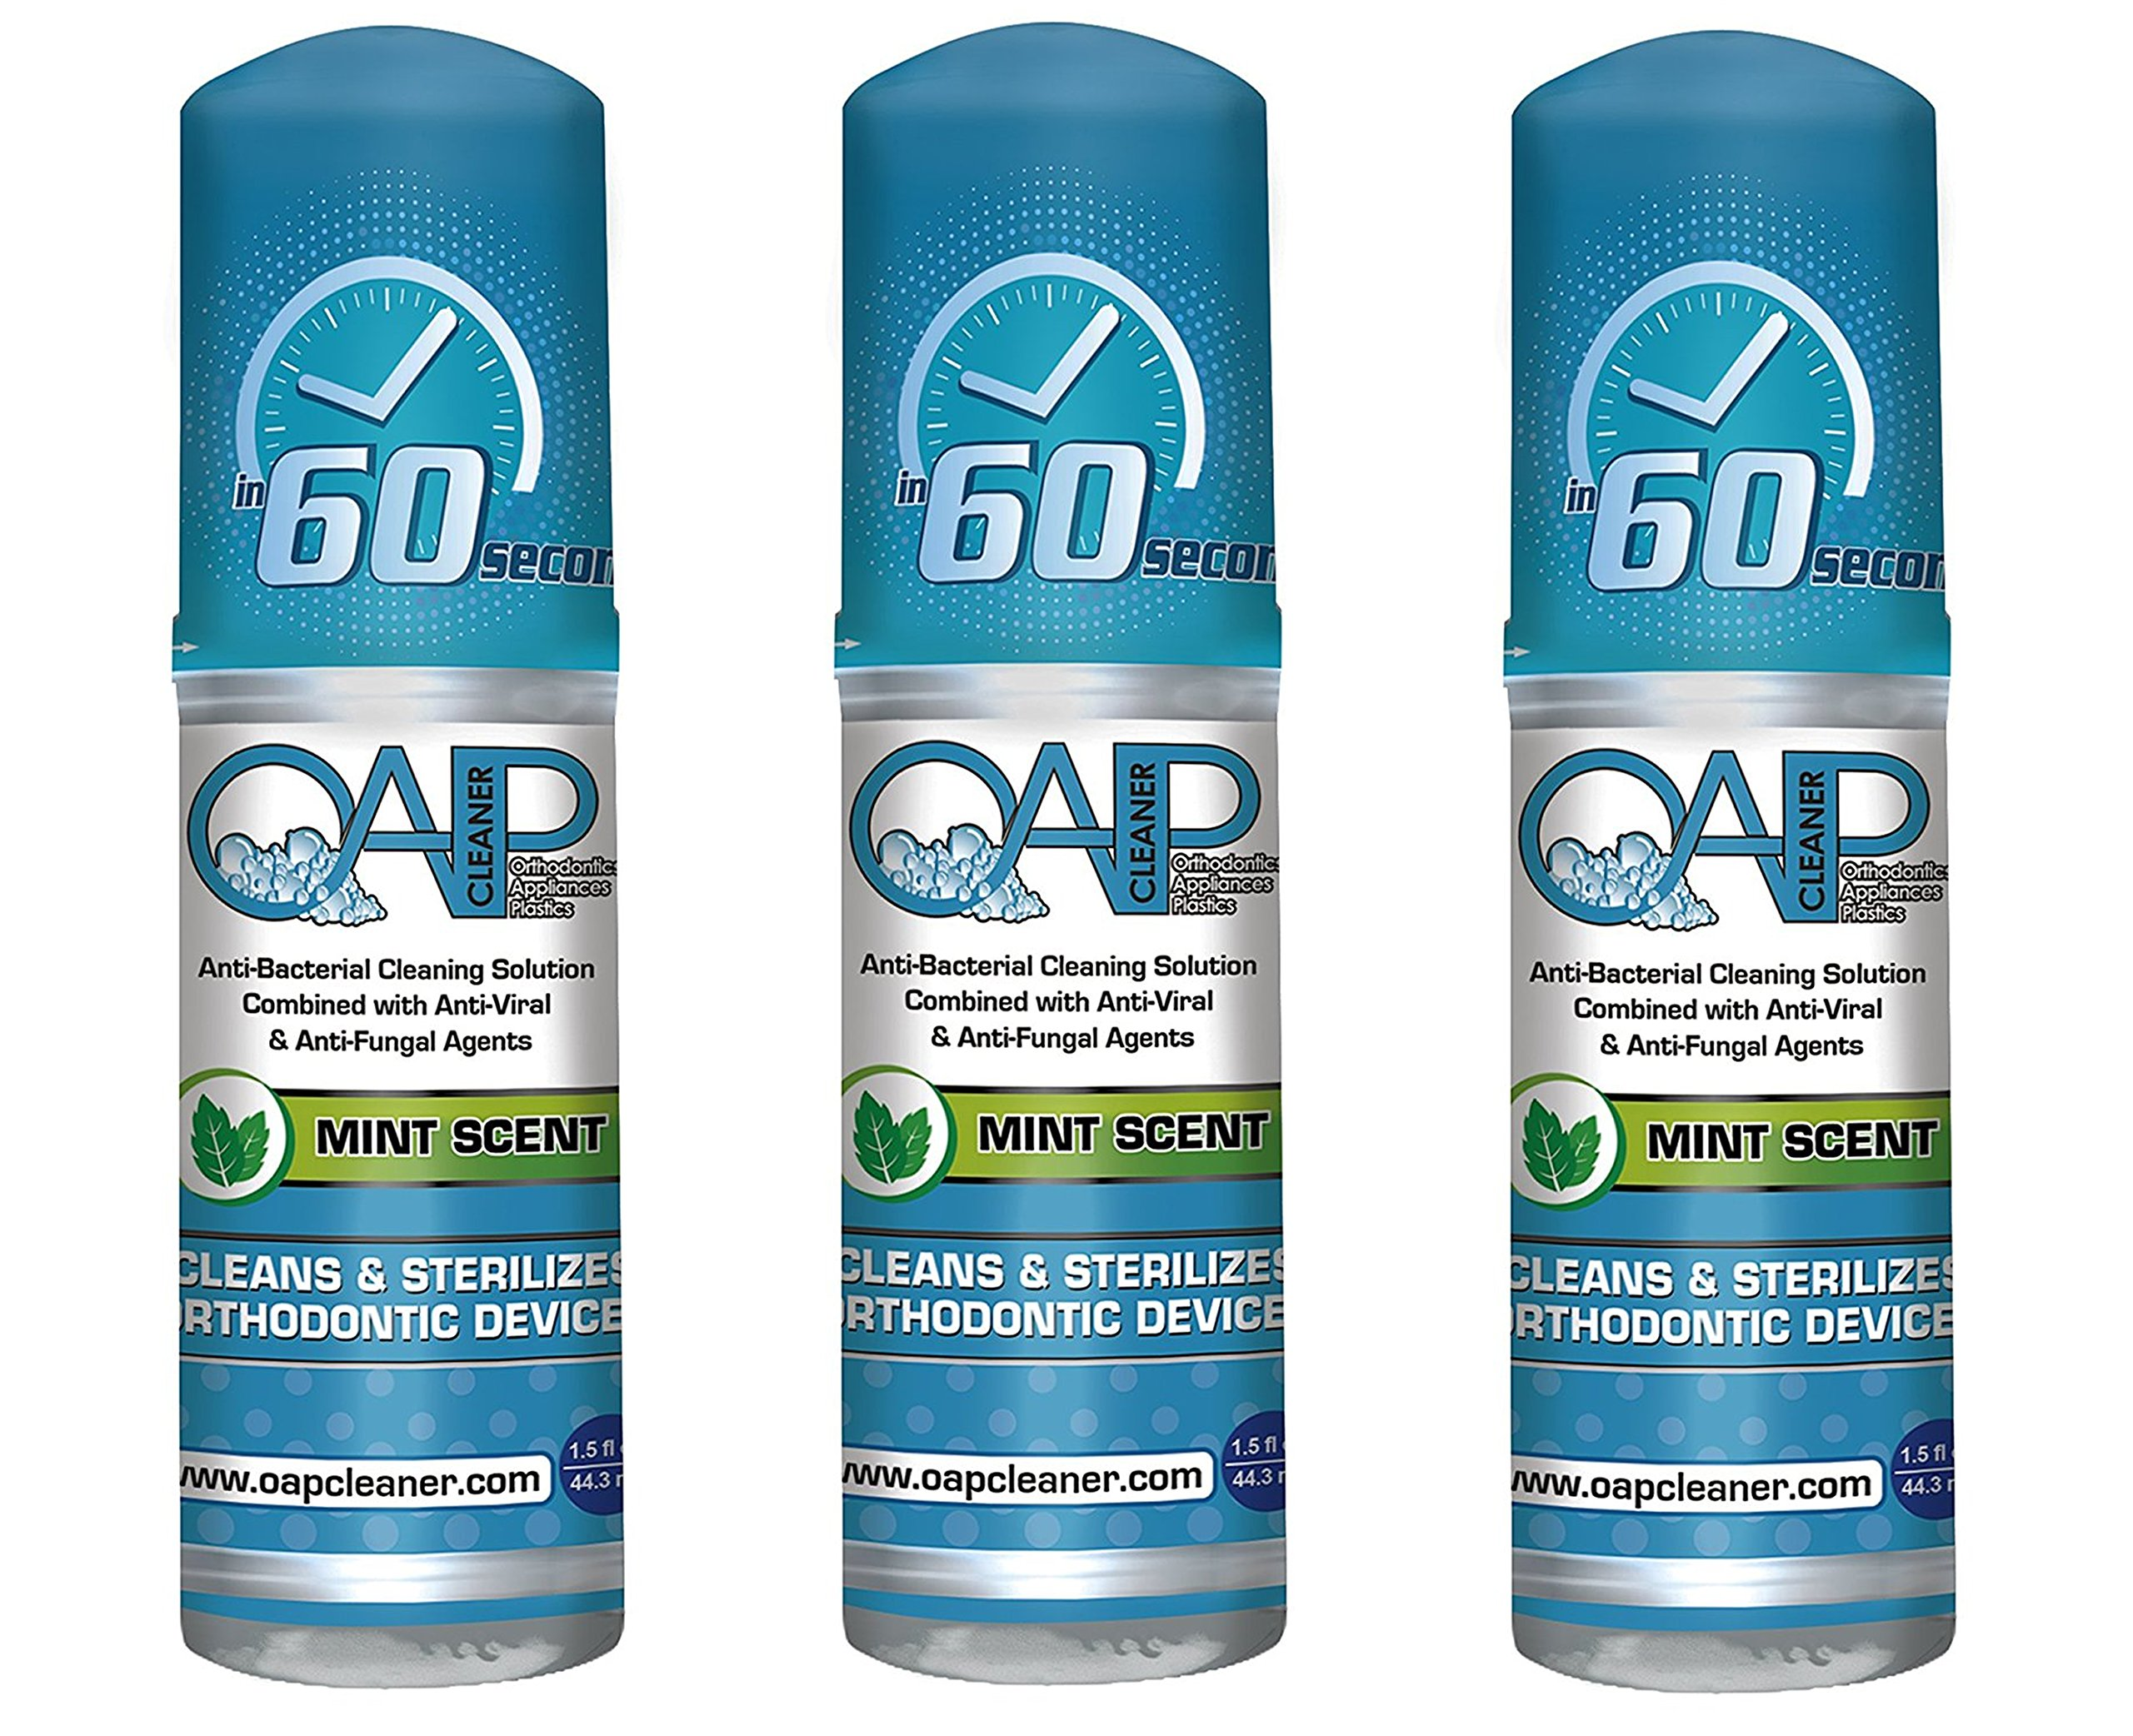 OAP Cleaner -Cleaner for Removeable Dental and Ortho Appliances - Foam, Mint Scent - 44.3ml (3 Bottles) by OAP